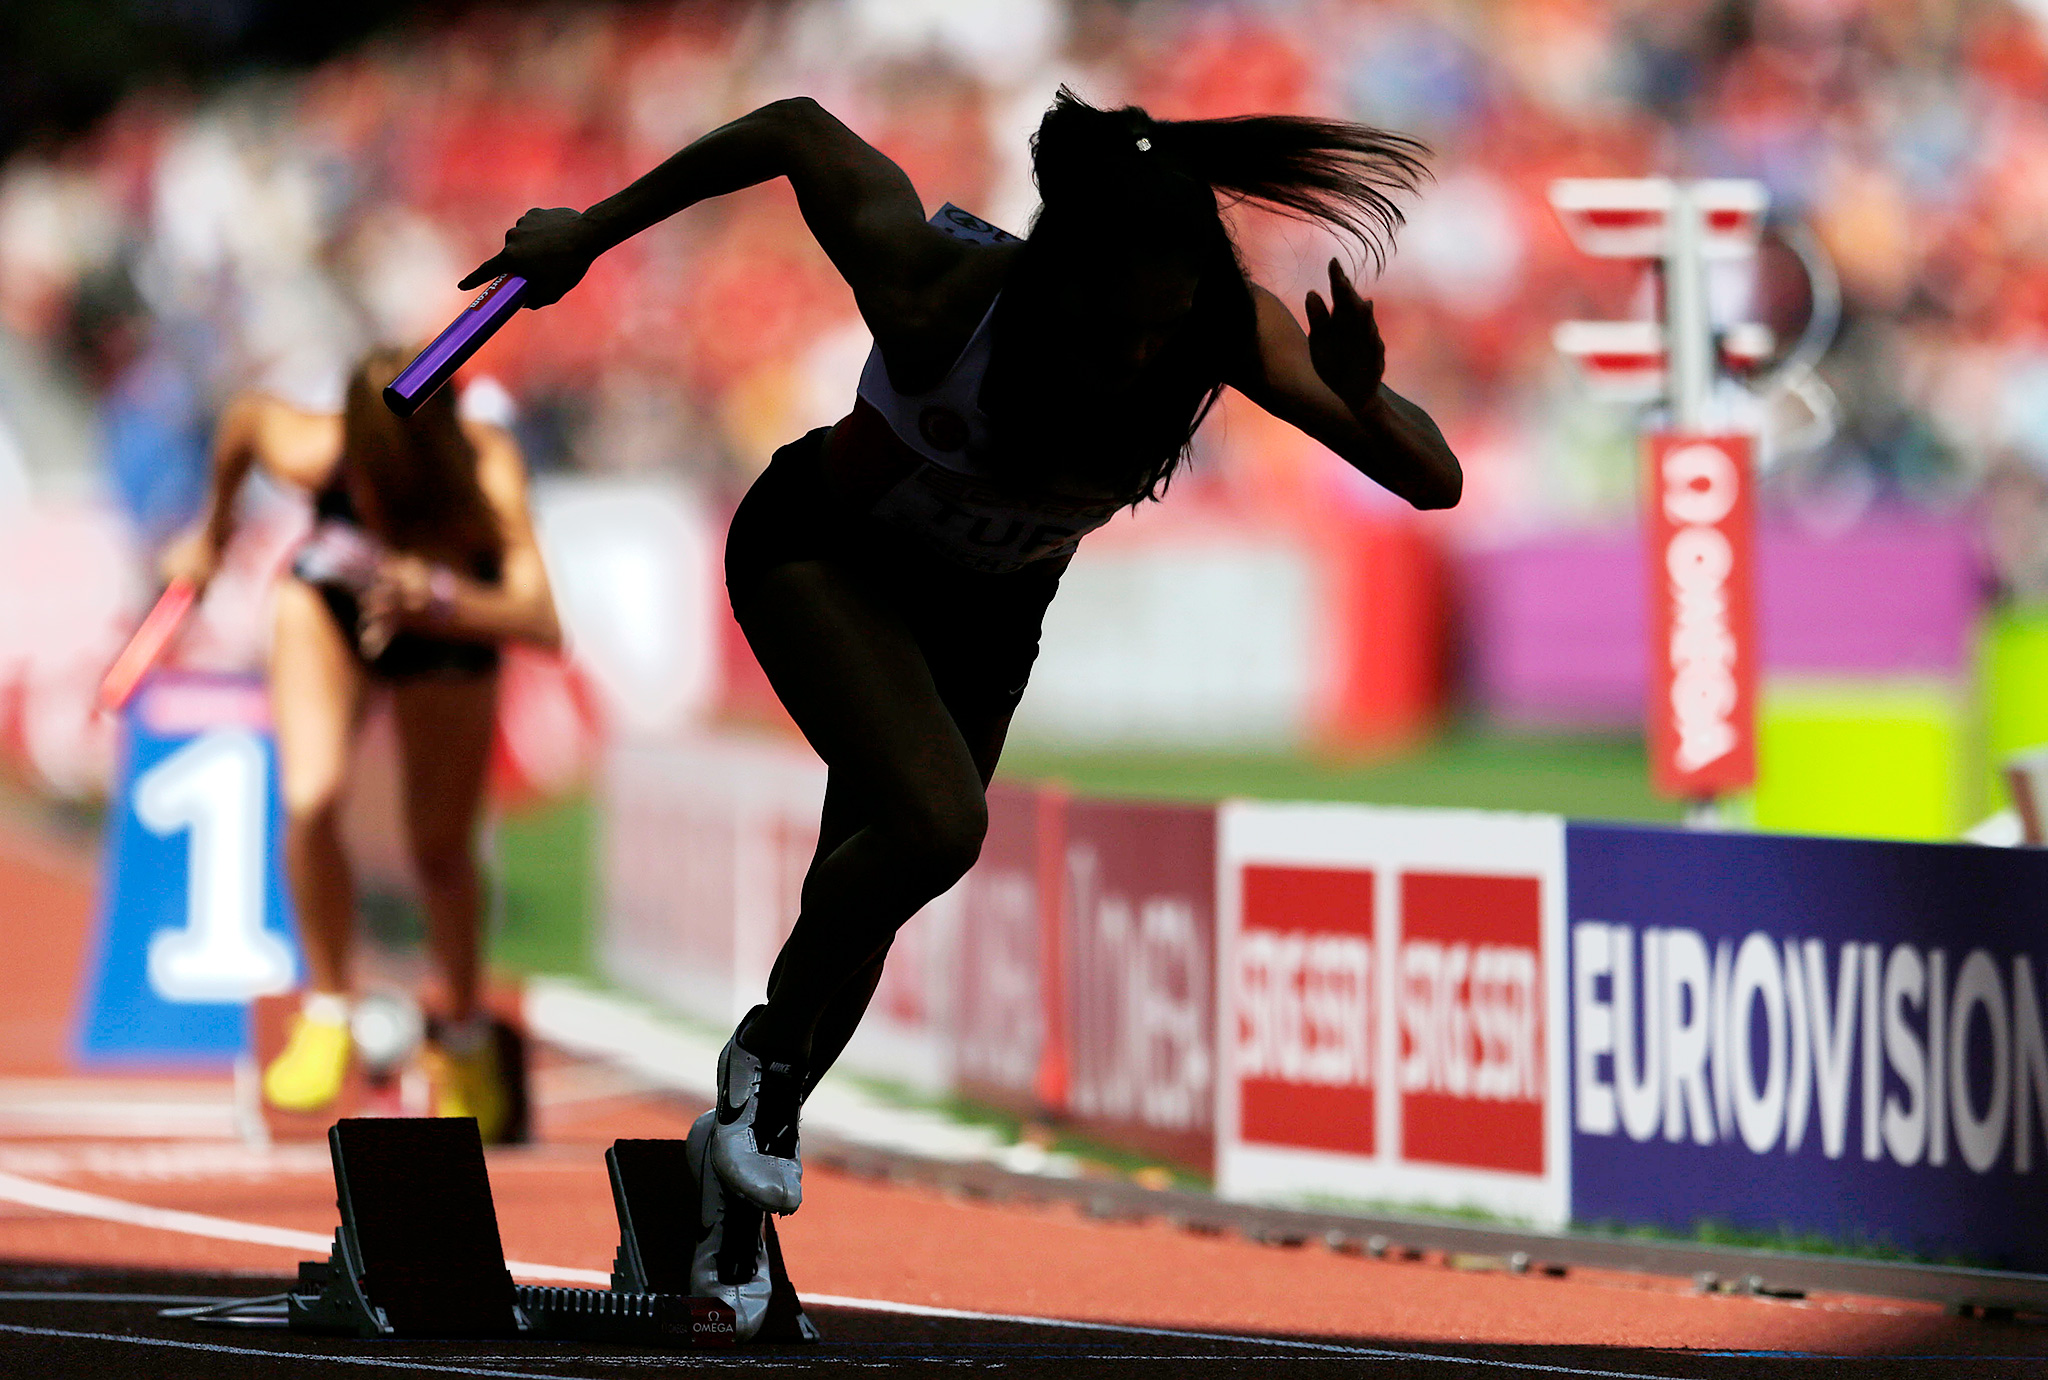 A runner starts in the women's 4x400-meter relay heat at the European athletics championships in Zurich, Switzerland.